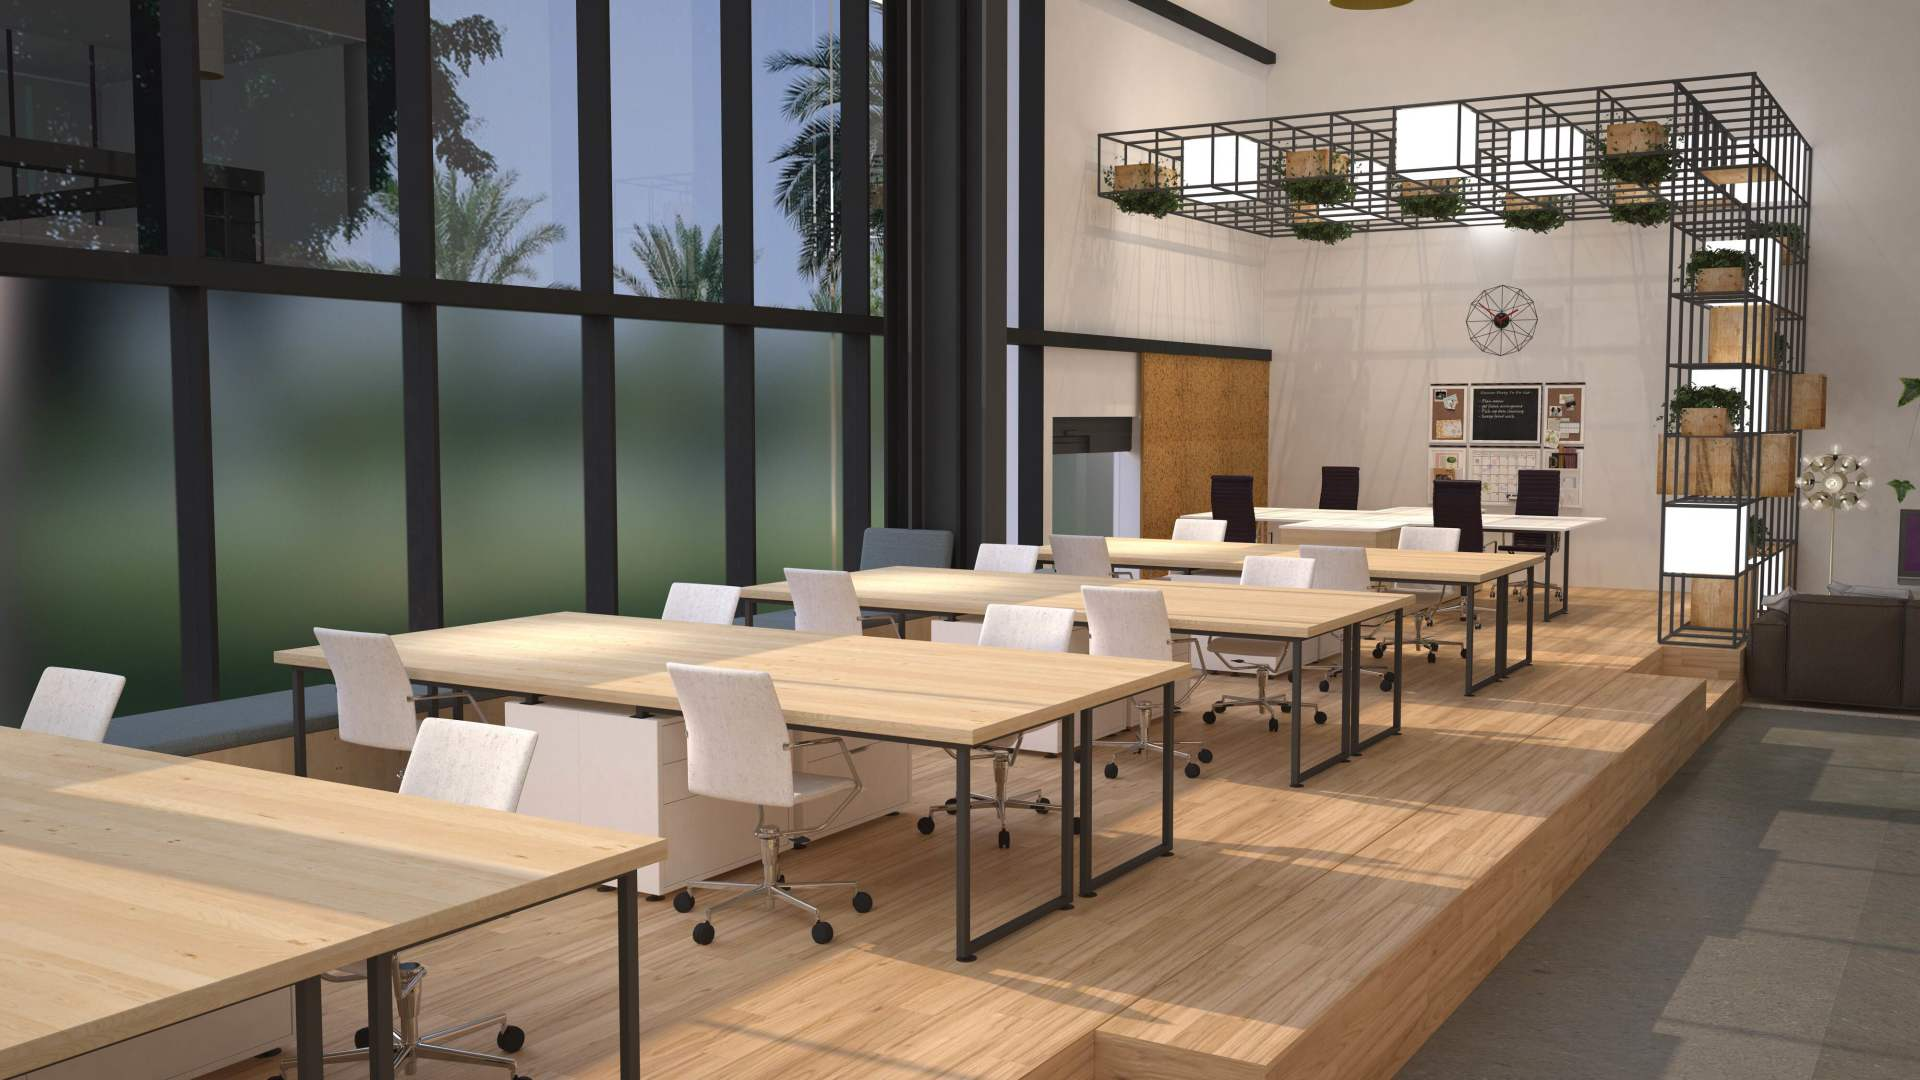 workstation design for office, minimal creative interior design for corporate spaces, inspiring place to work, fresh interior design for commercial interiors, Rosha Interiors and Linkviva office design, great place to work